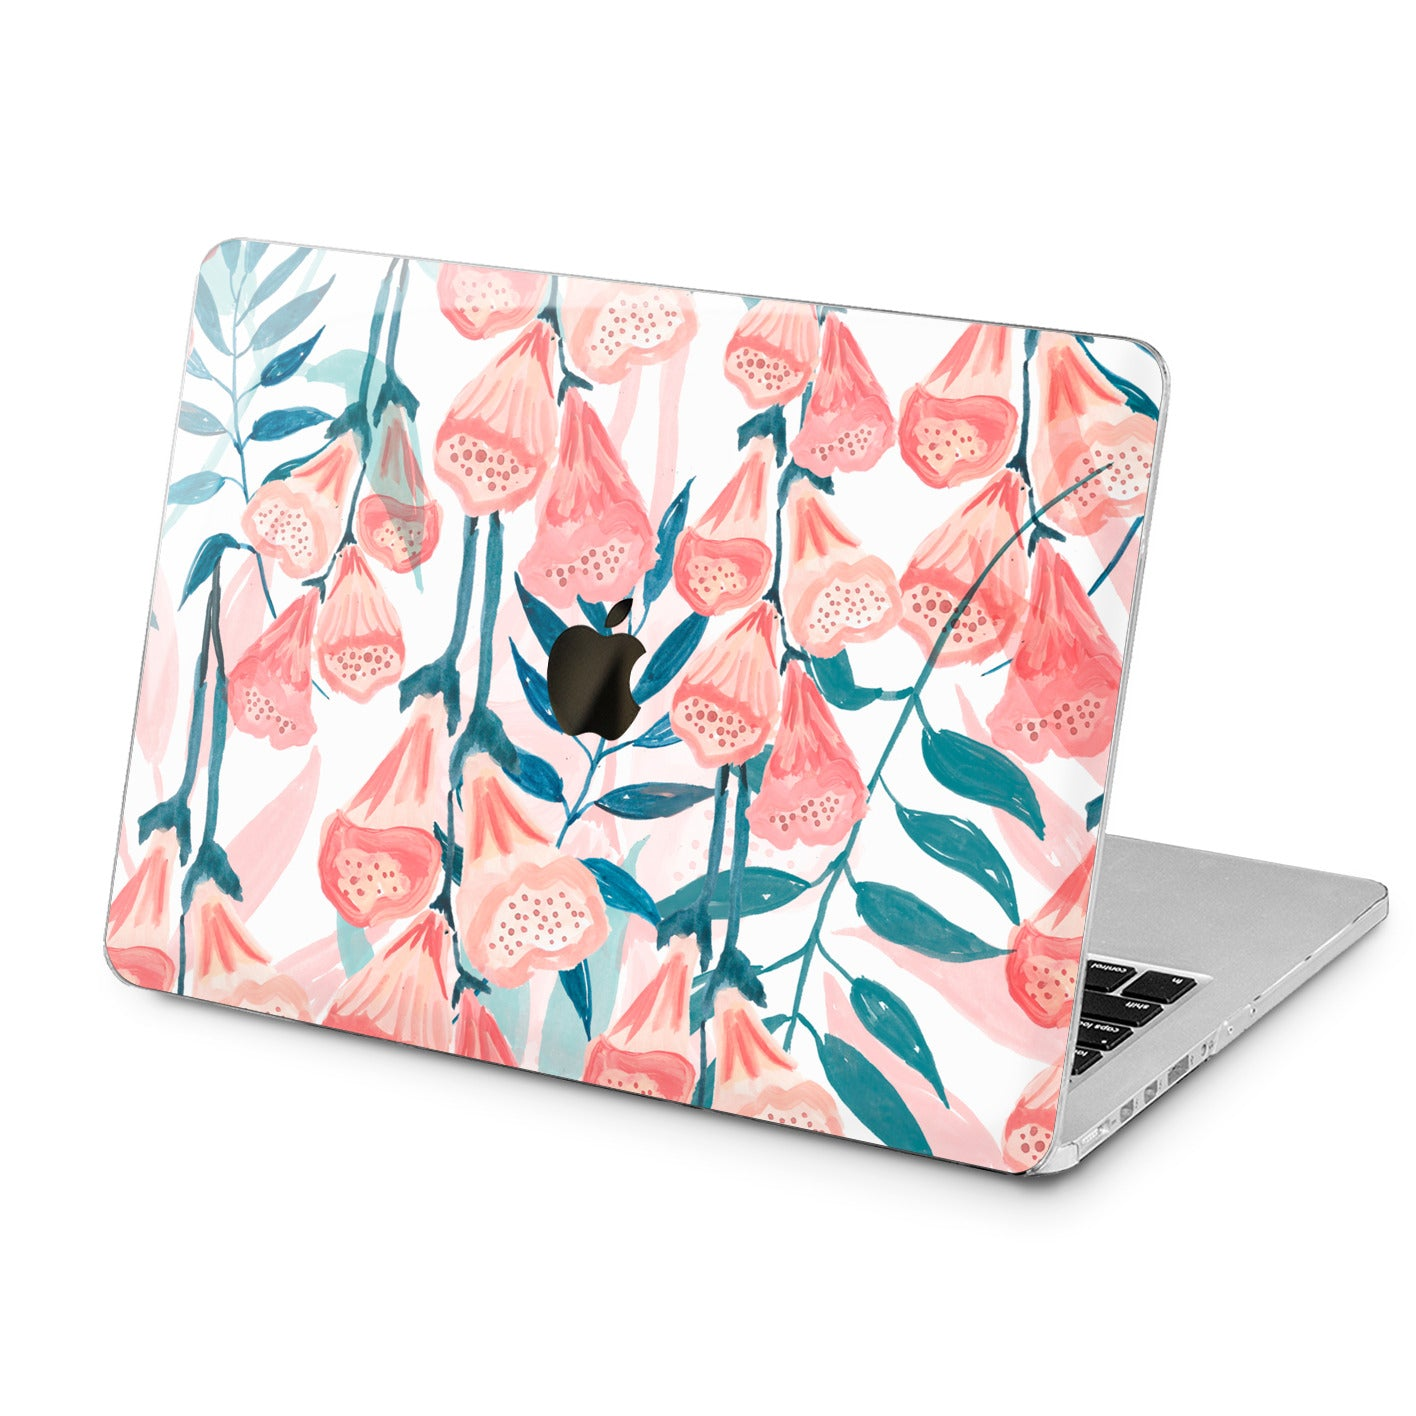 Lex Altern Lex Altern Watercolor Red Flowers Case for your Laptop Apple Macbook.